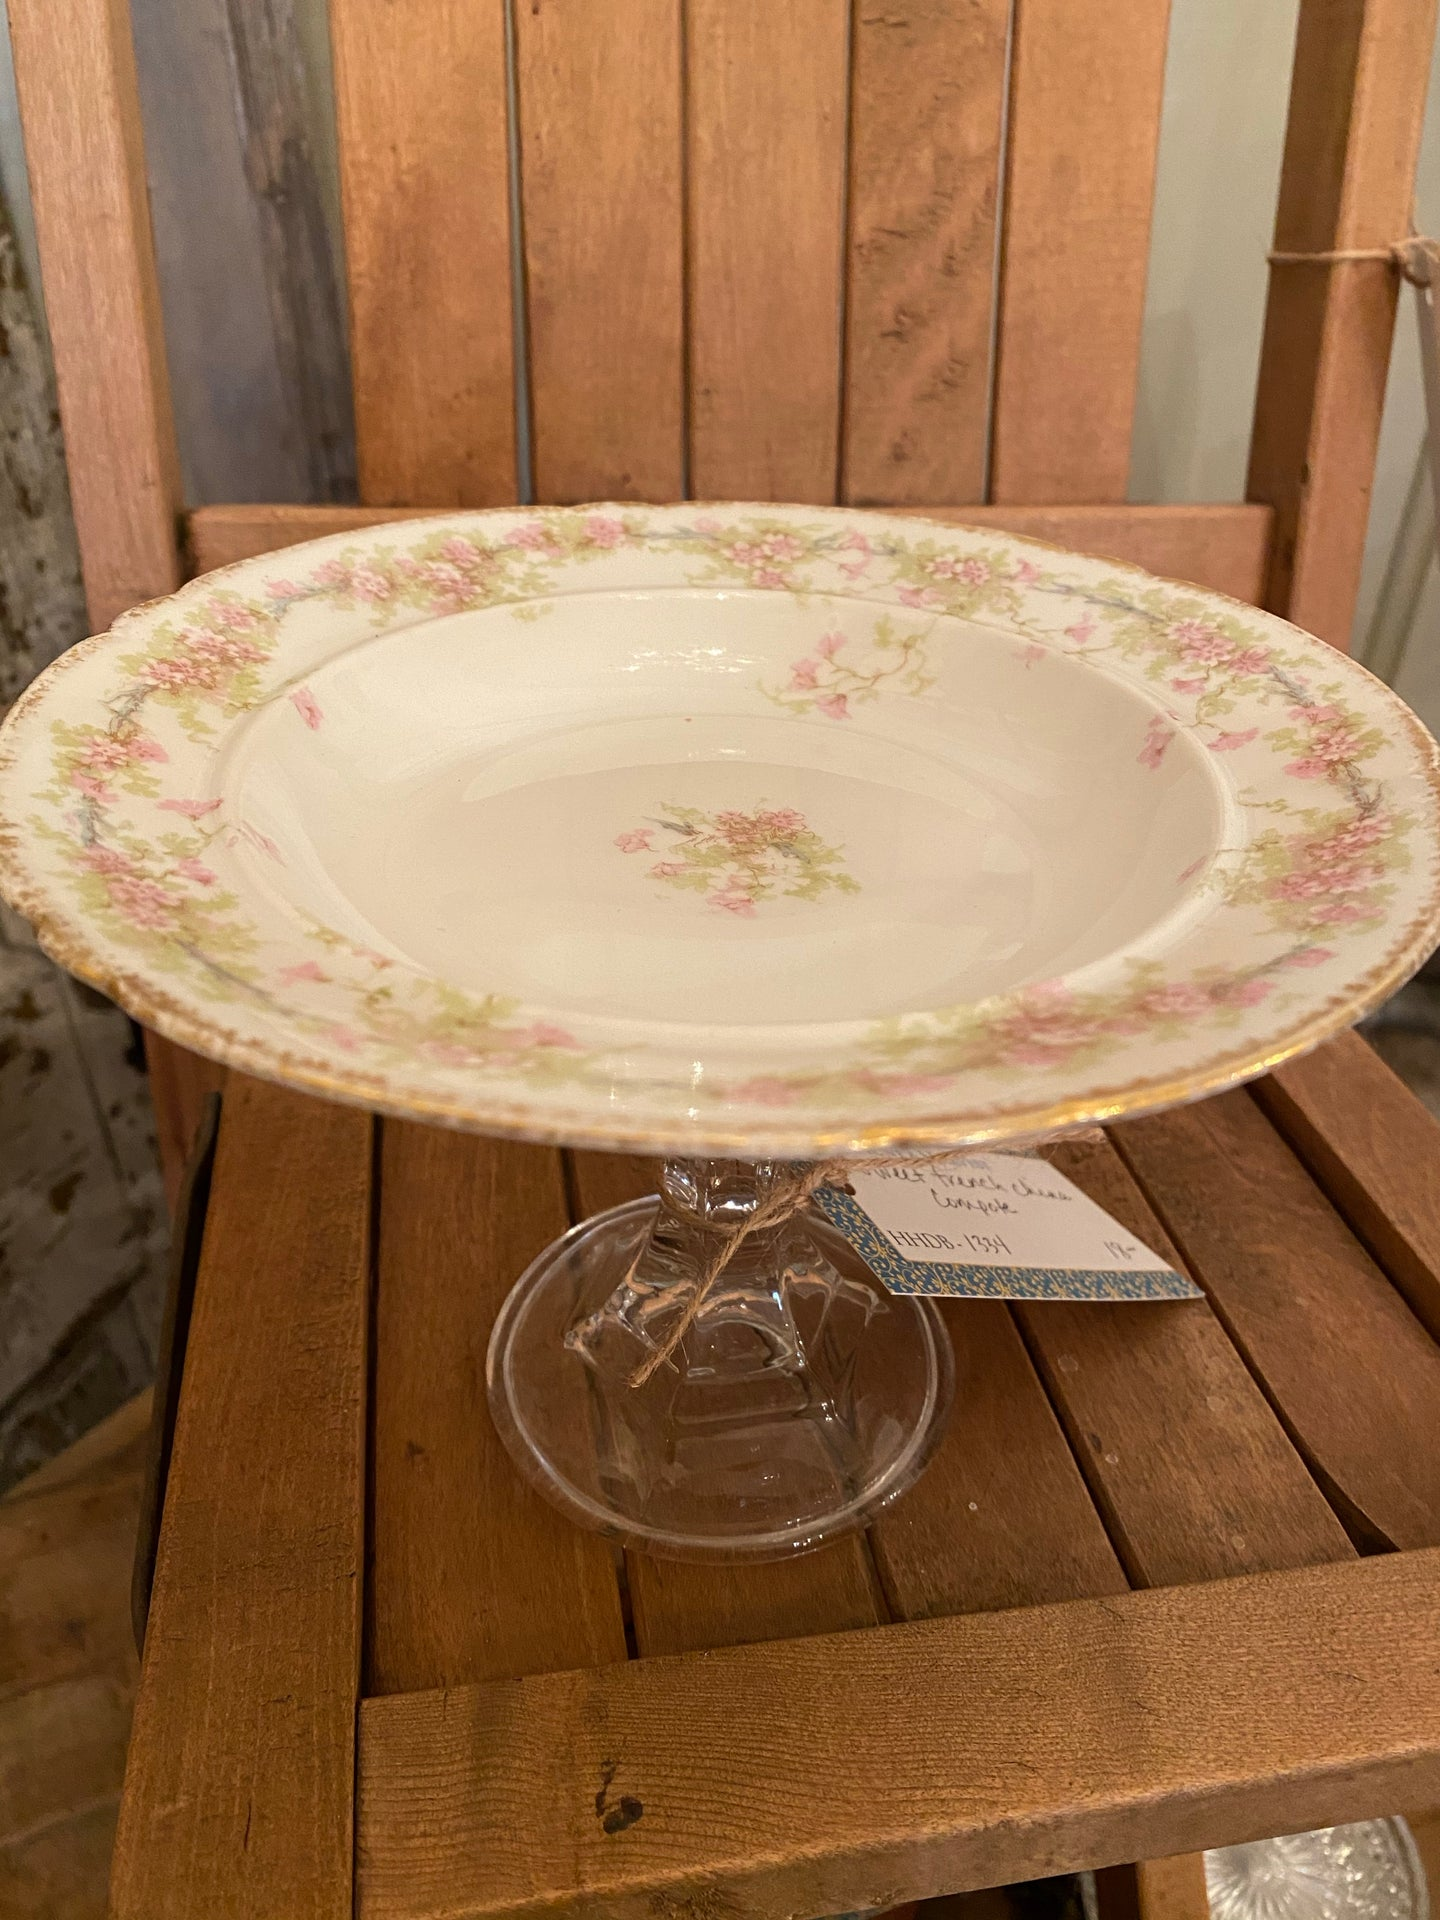 Sweet Vintage French China Pedestal Dish